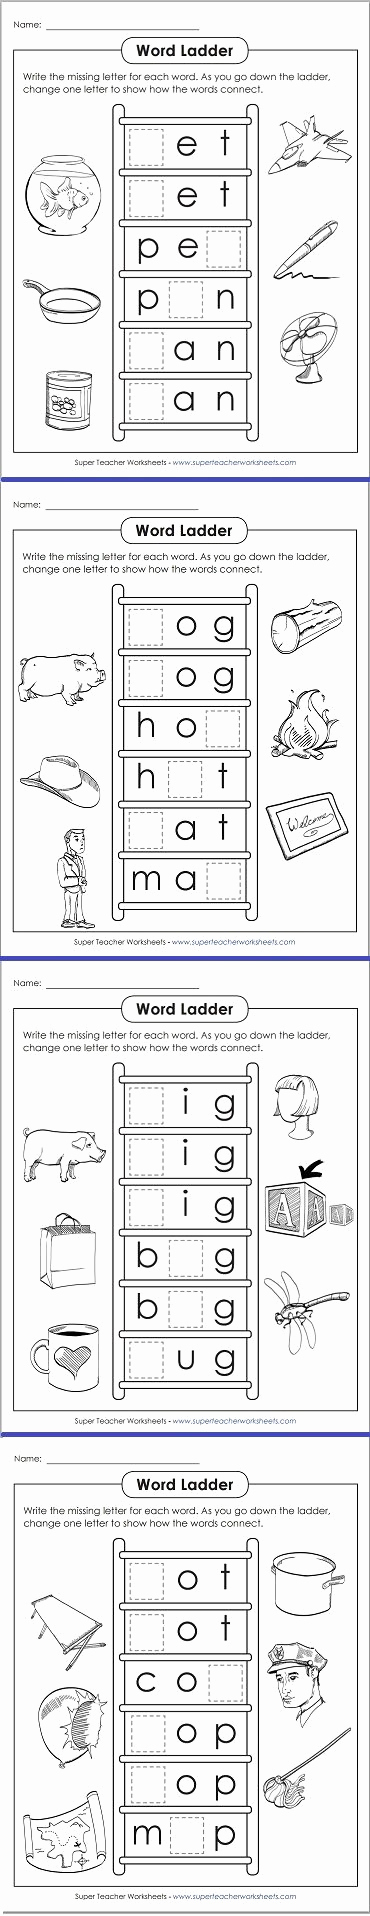 Word Ladder Worksheets Lovely Take A Look at these Fun Word Ladders for Phonics Practice